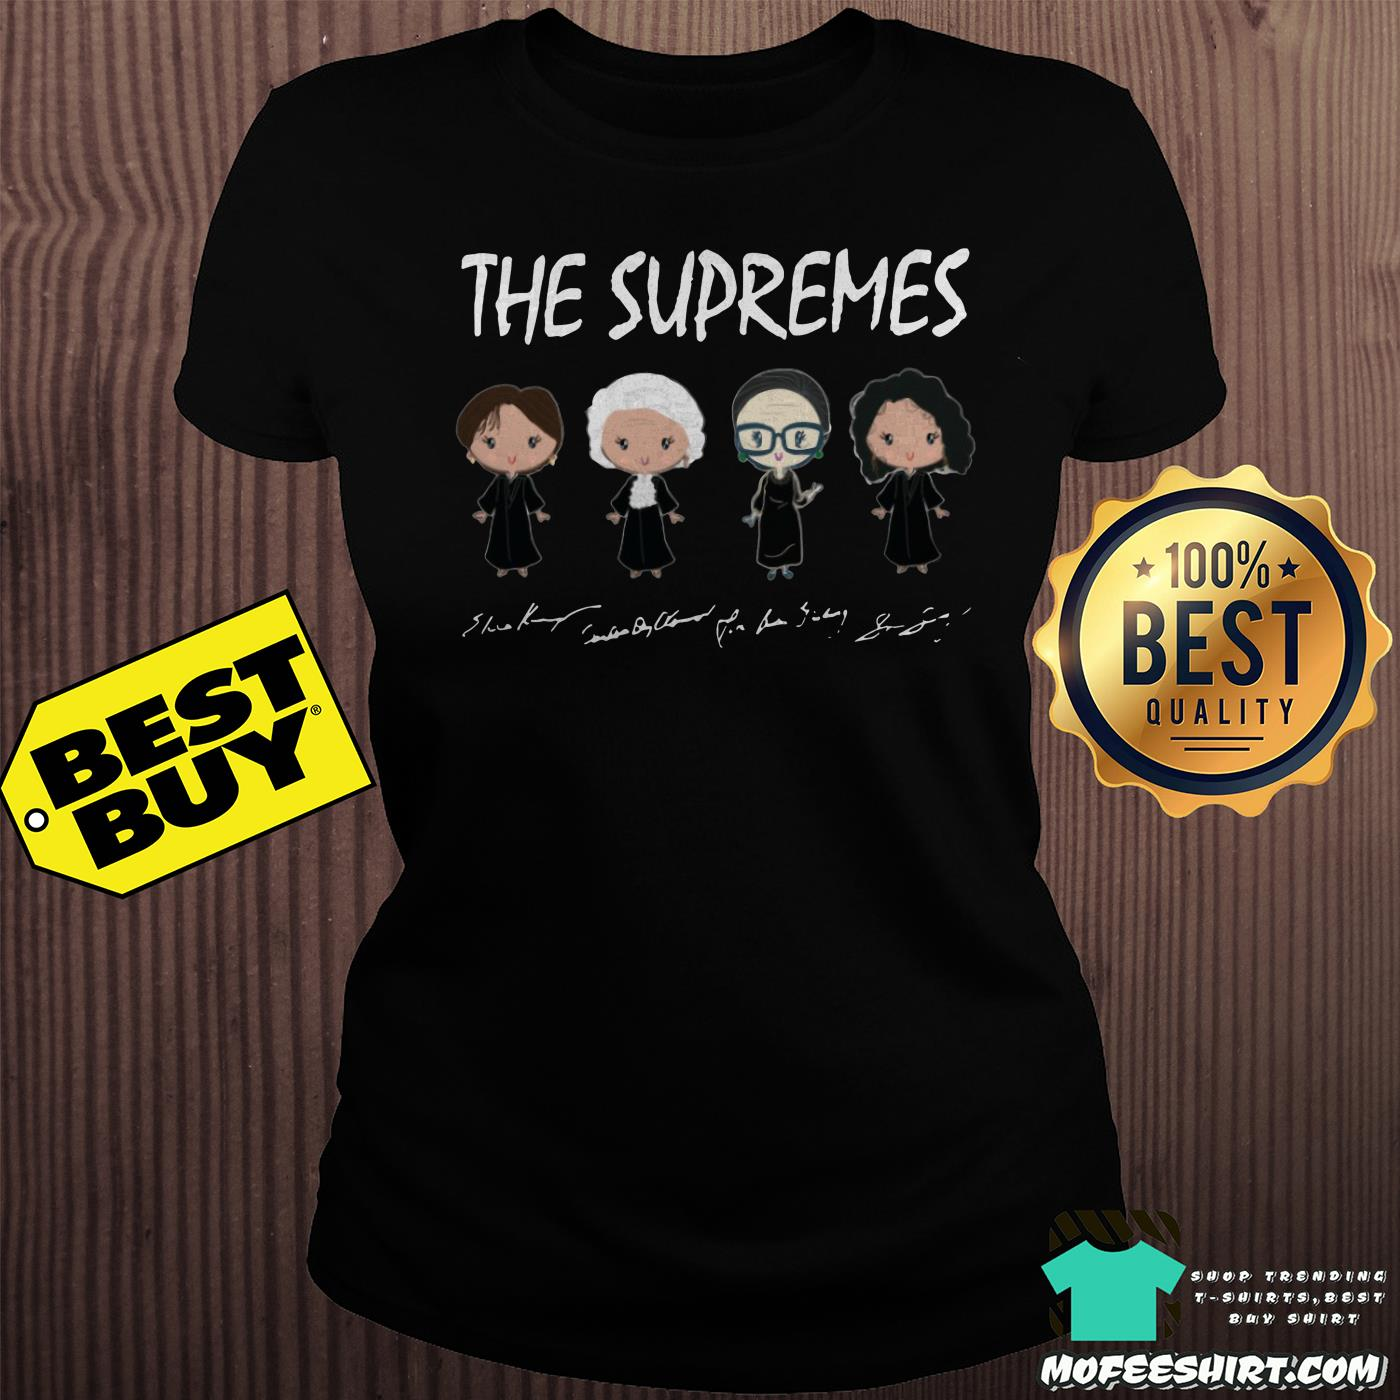 the supremes ruth bader ginsburg signatures ladies tee - The supremes Ruth Bader Ginsburg signatures shirt